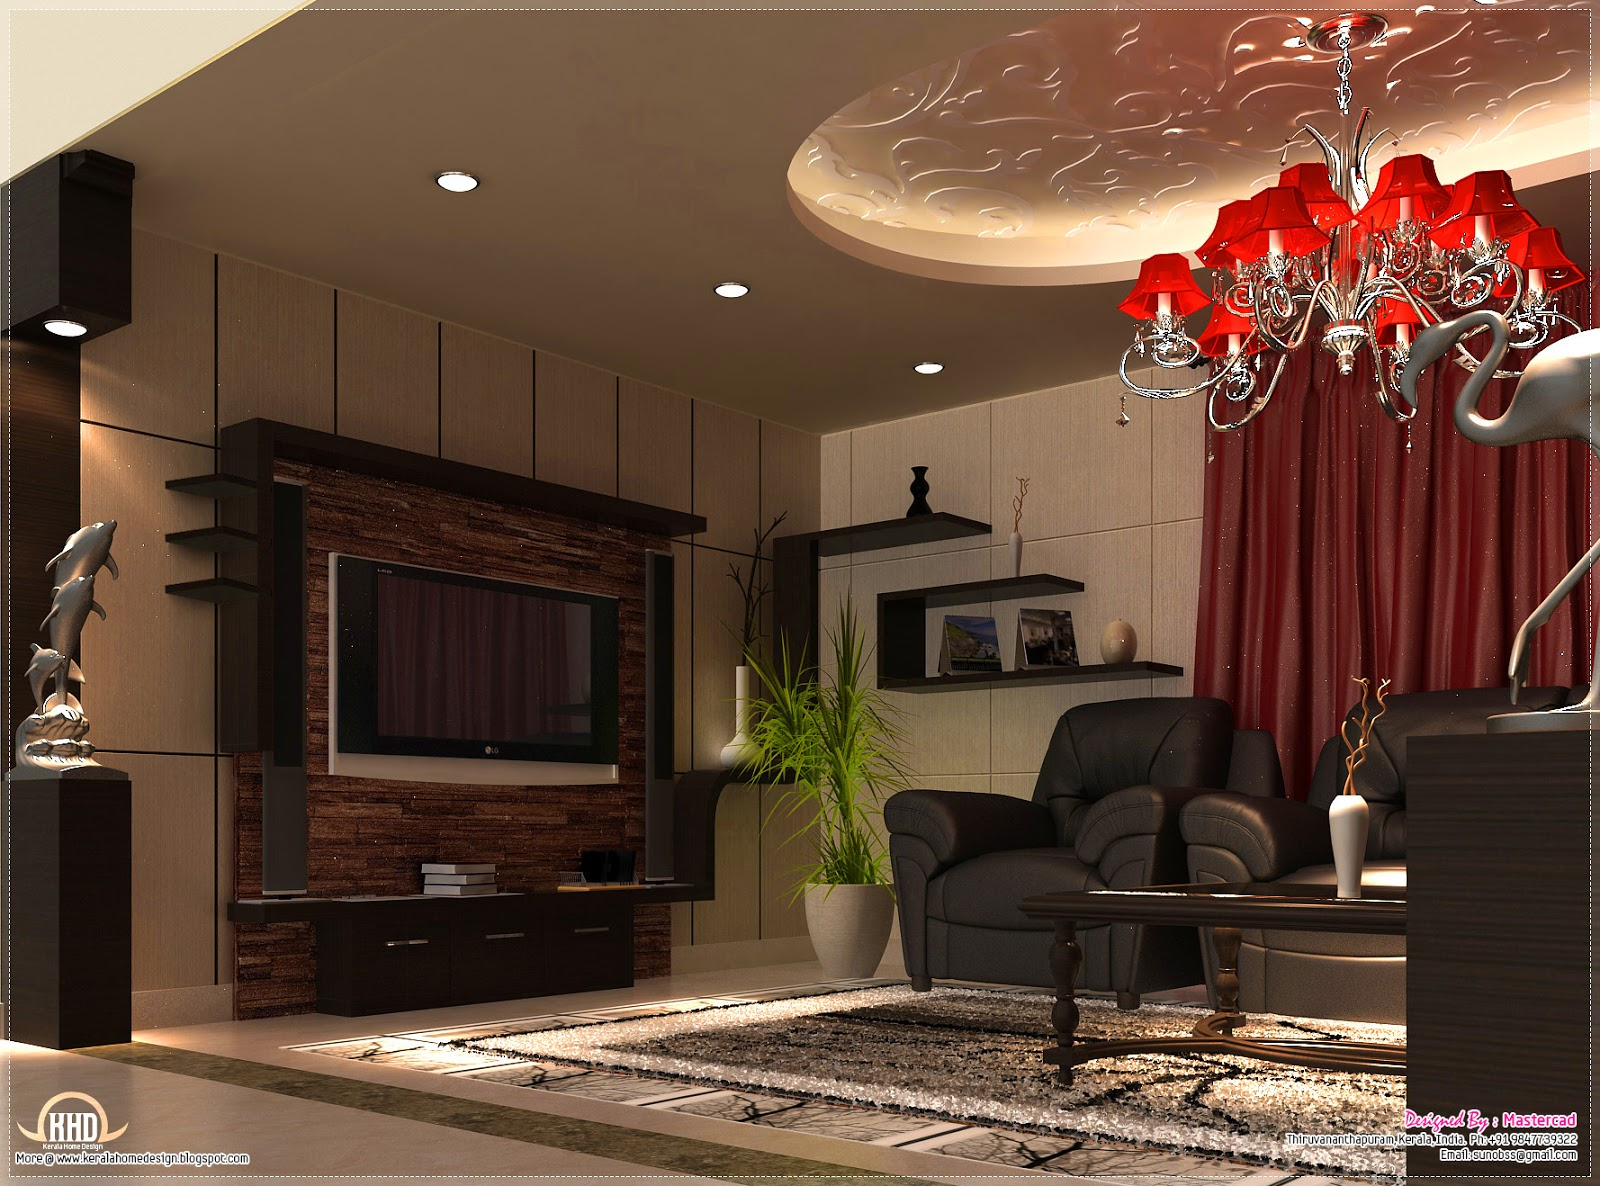 Interior design ideas kerala home design and floor plans for Home decoration house design pictures